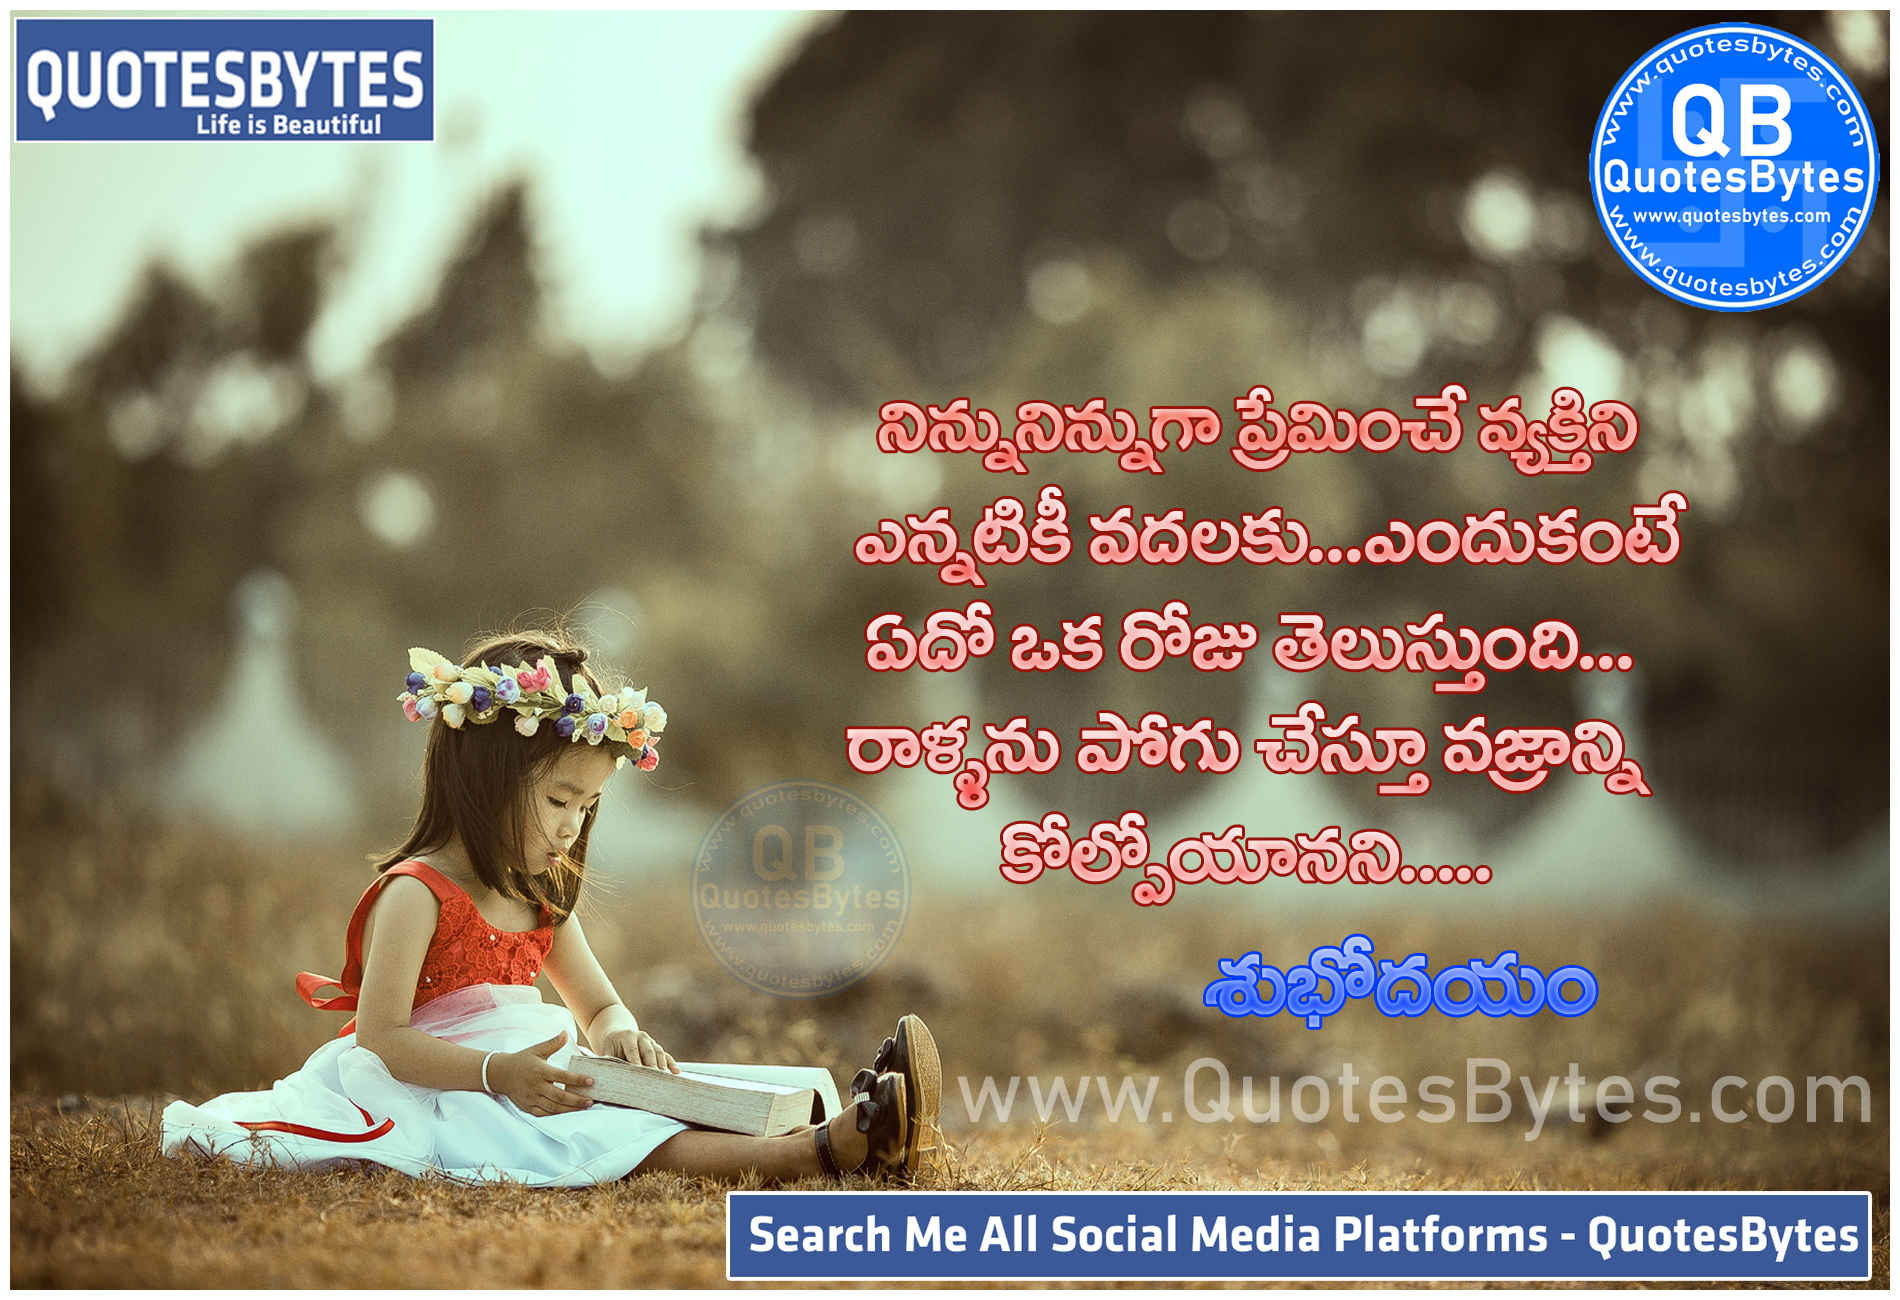 Latest Telugu Good Morning Quotations,telugu good morning quotations,telugu good morning quotations download,latest telugu good morning images,good morning quotations in telugu,Best inspirational Good morning quotes in Telugu, Best Quotes About Life,quotesbytes,inspirational quotes, Life Quotes — Inspiring the Happy, Good and Funny in Life,motivational quotes,kannada motivational words,life quotes in telugu,motivational quotes in tamil,motivational quotes in kannada,subhodayam telugu,good morning motivational quotes in tamil,truth quotes images in hindi,motivational quotes in malayalam,love quotes in telugu,images of life lessons quotes,victory quotes,telugu good night kavithalu sms,funny telugu kavithalu,inspirational quotes in telugu,subhodayam images,subhodayam telugu images,motivational quotes in telugu,love quotes images kannada,goodnight images malayalam,inspirational quotes in telugu with images,good night kannada thoughts,success quotes in telugu,inspirational quotes in malayalam,marriage wishes in telugu quotes,motivational quotes telugu, telugu love quotations free download,tamil inspirational quotes,good morning malayalam sms,funny kavithalu in telugu,best quotes in telugu,life motivational quotes in tamil,moral quotes in telugu,subhodayam photos, MOTIVATIONAL QUOTES TO REACH YOUR POTENTIAL EACH DAY, Inspirational Motivational Quotes To Inspire You To Greatness,motivational quotes tamil,Telugu animutyalu, Telugu sooktulu, telugu motivational quotes text, shubhodayam greetings wishes messages in telugu,best telugu Goood morning success Quotes with goal setting sms text messages for whatsapp,good morning god images in telugu,love quotations,Latest Telugu good morning quotations for friends about win life goal settings,Quotes ideas | quotes, great quotes, inspirational quotes, telugu,malayalam love quotes in english, whatsapp dp images for girl with quotes in telugu,inspiring telugu quotes,motivational quotes in tamil images,good night images in kannada down